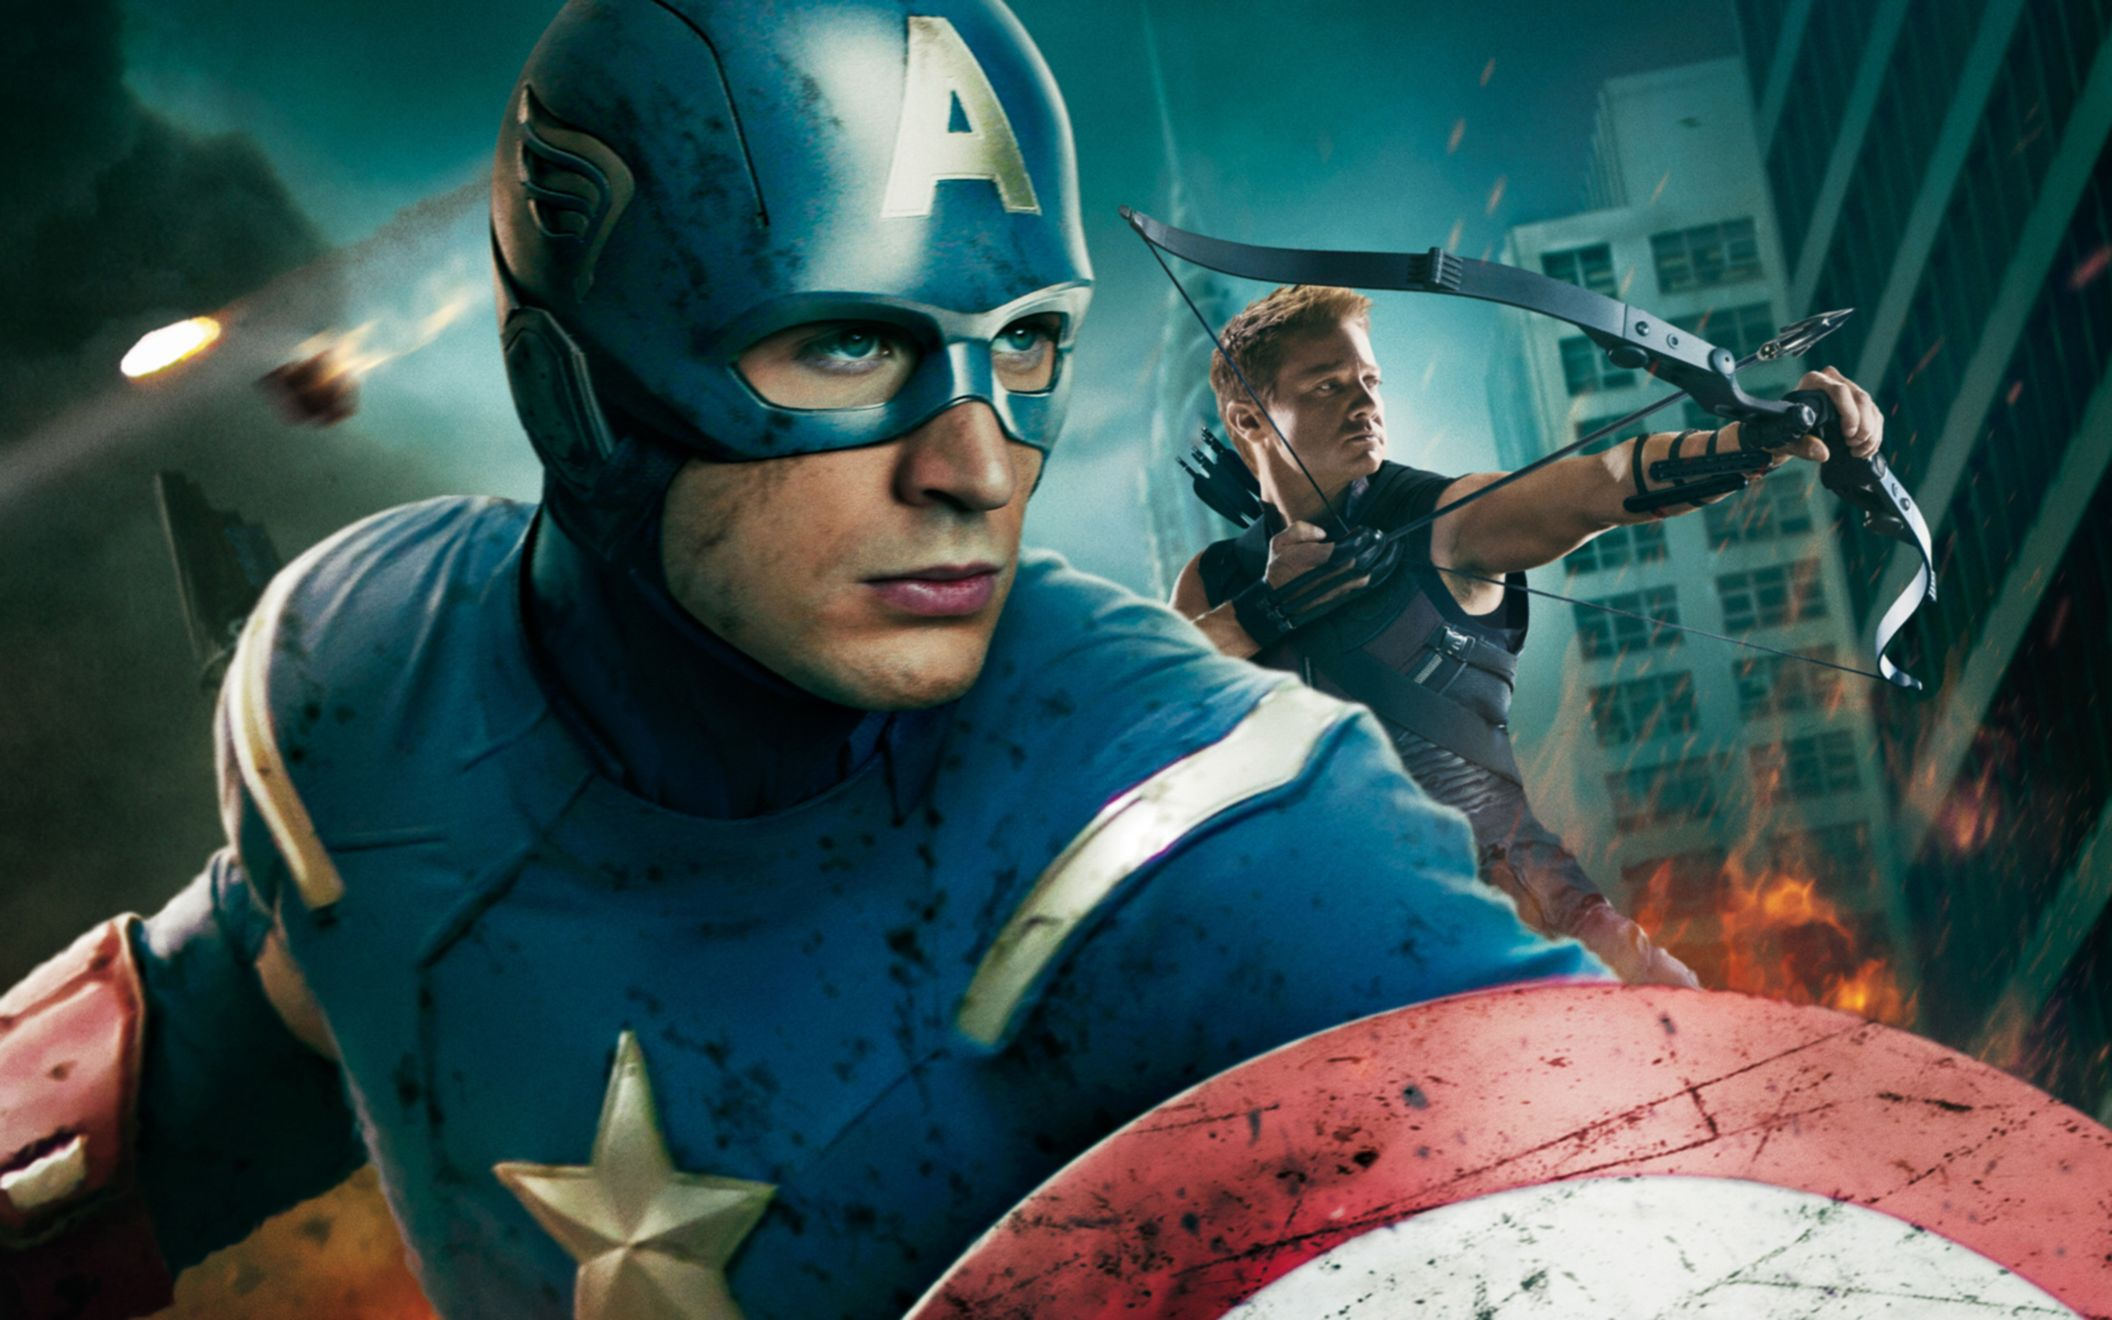 Download free HD Captain America In Avengers Movie Wide Wallpaper, image